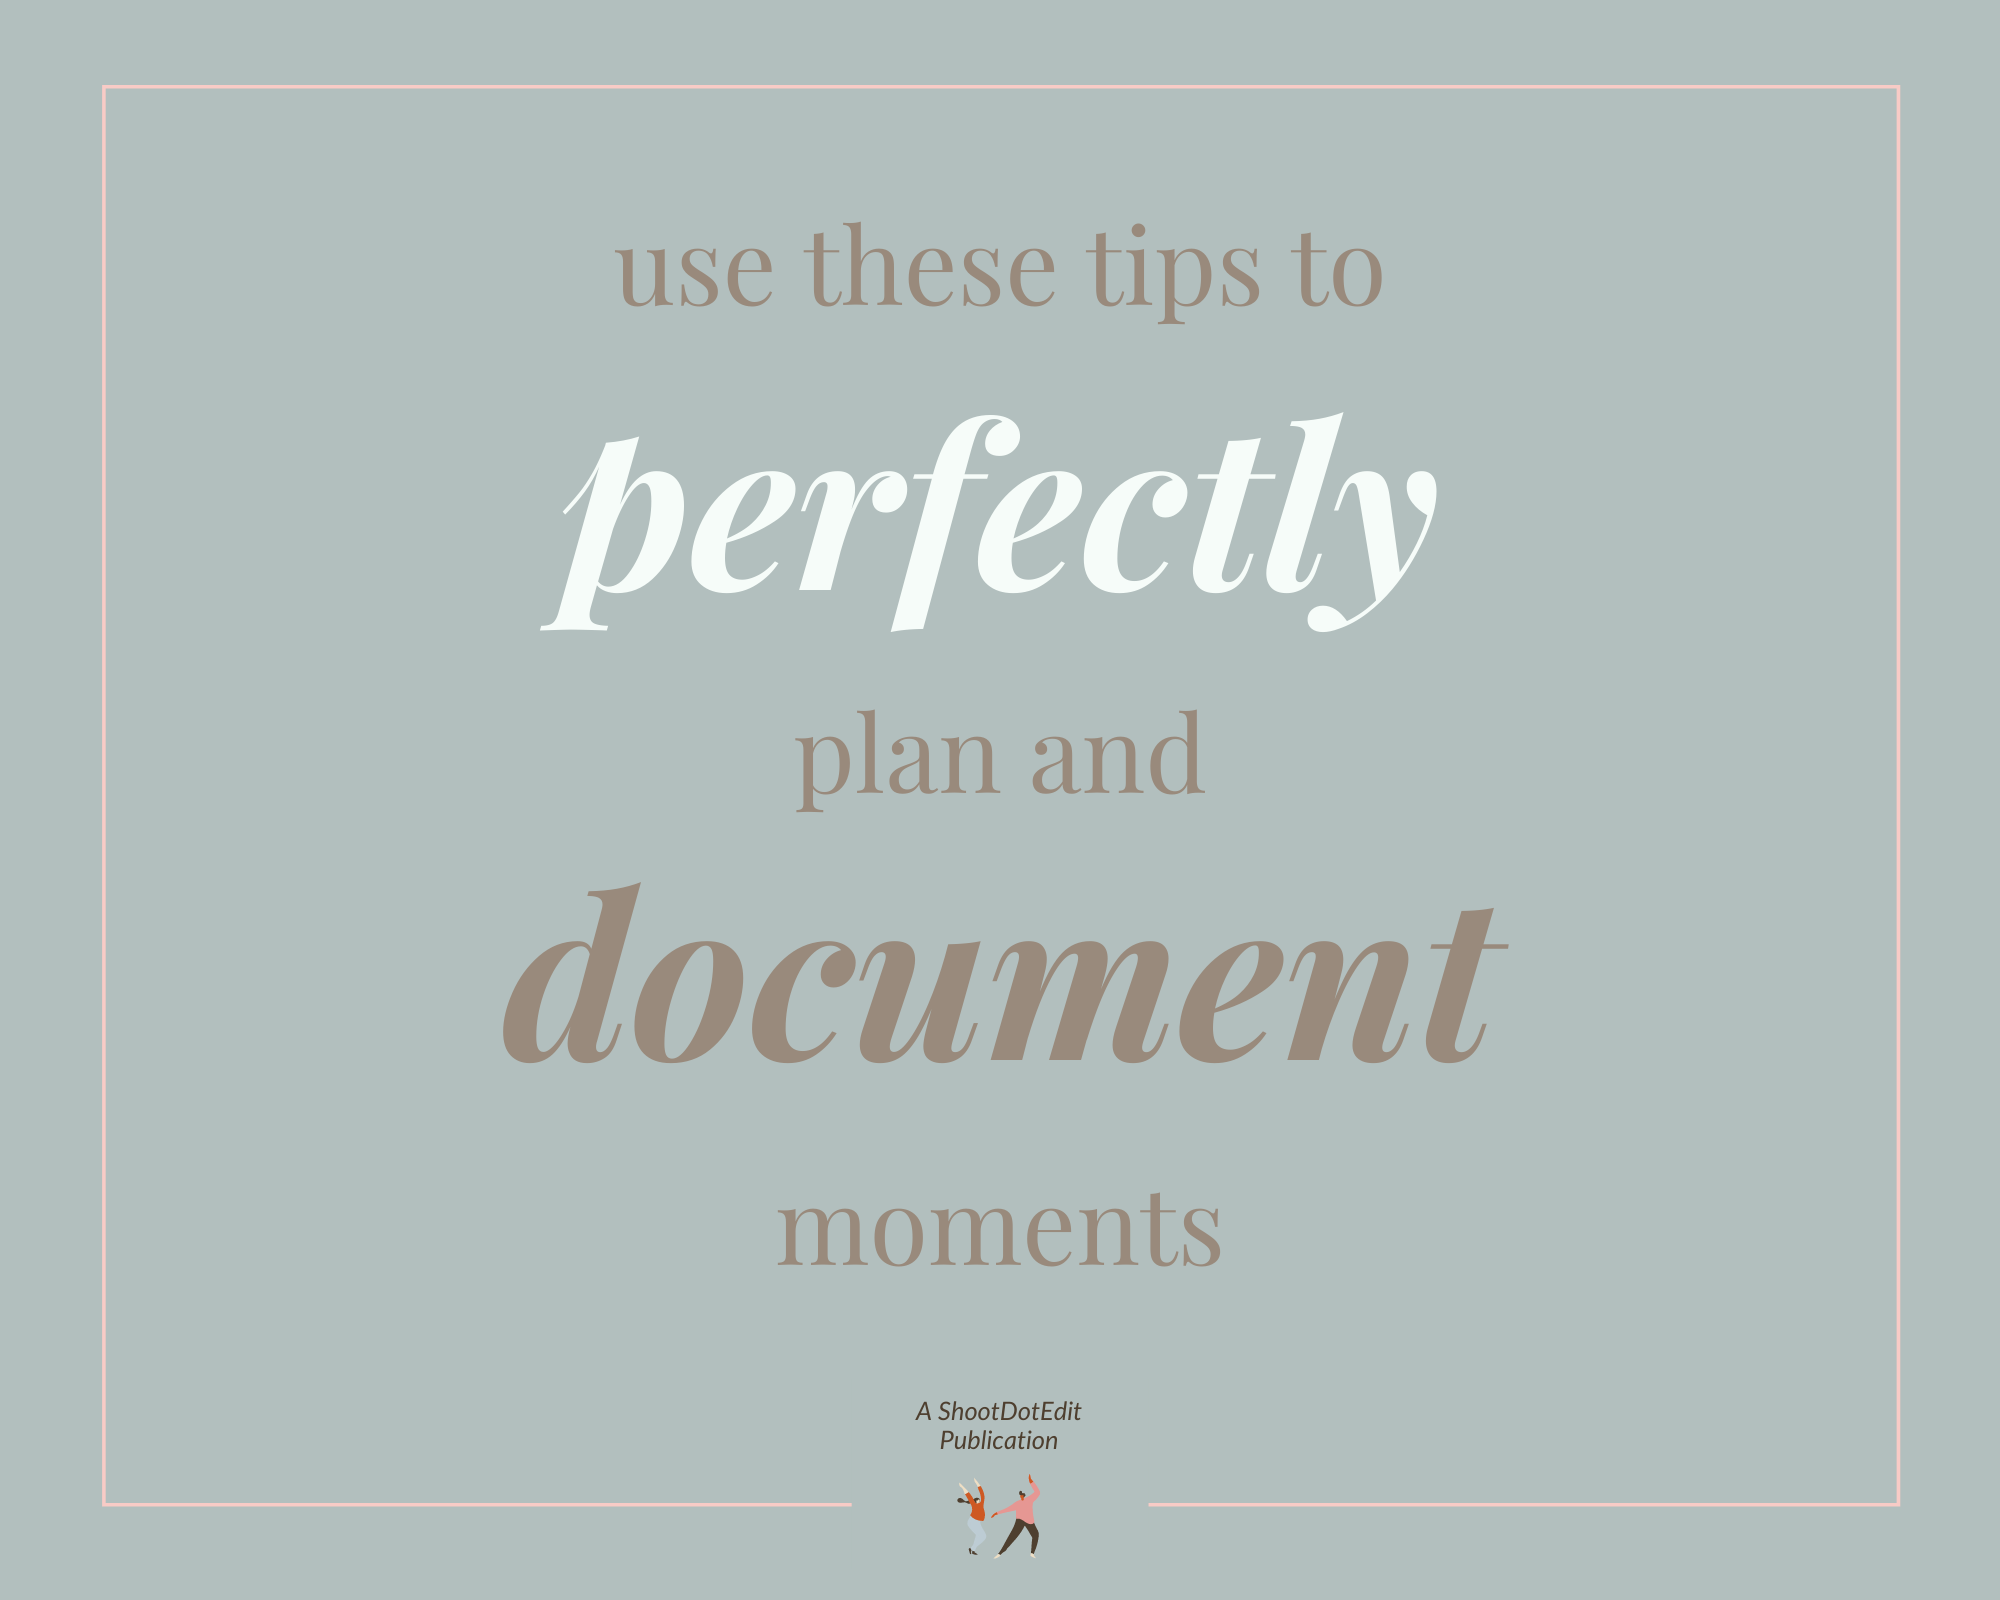 Infographic stating use these tips to perfectly plan and document moments